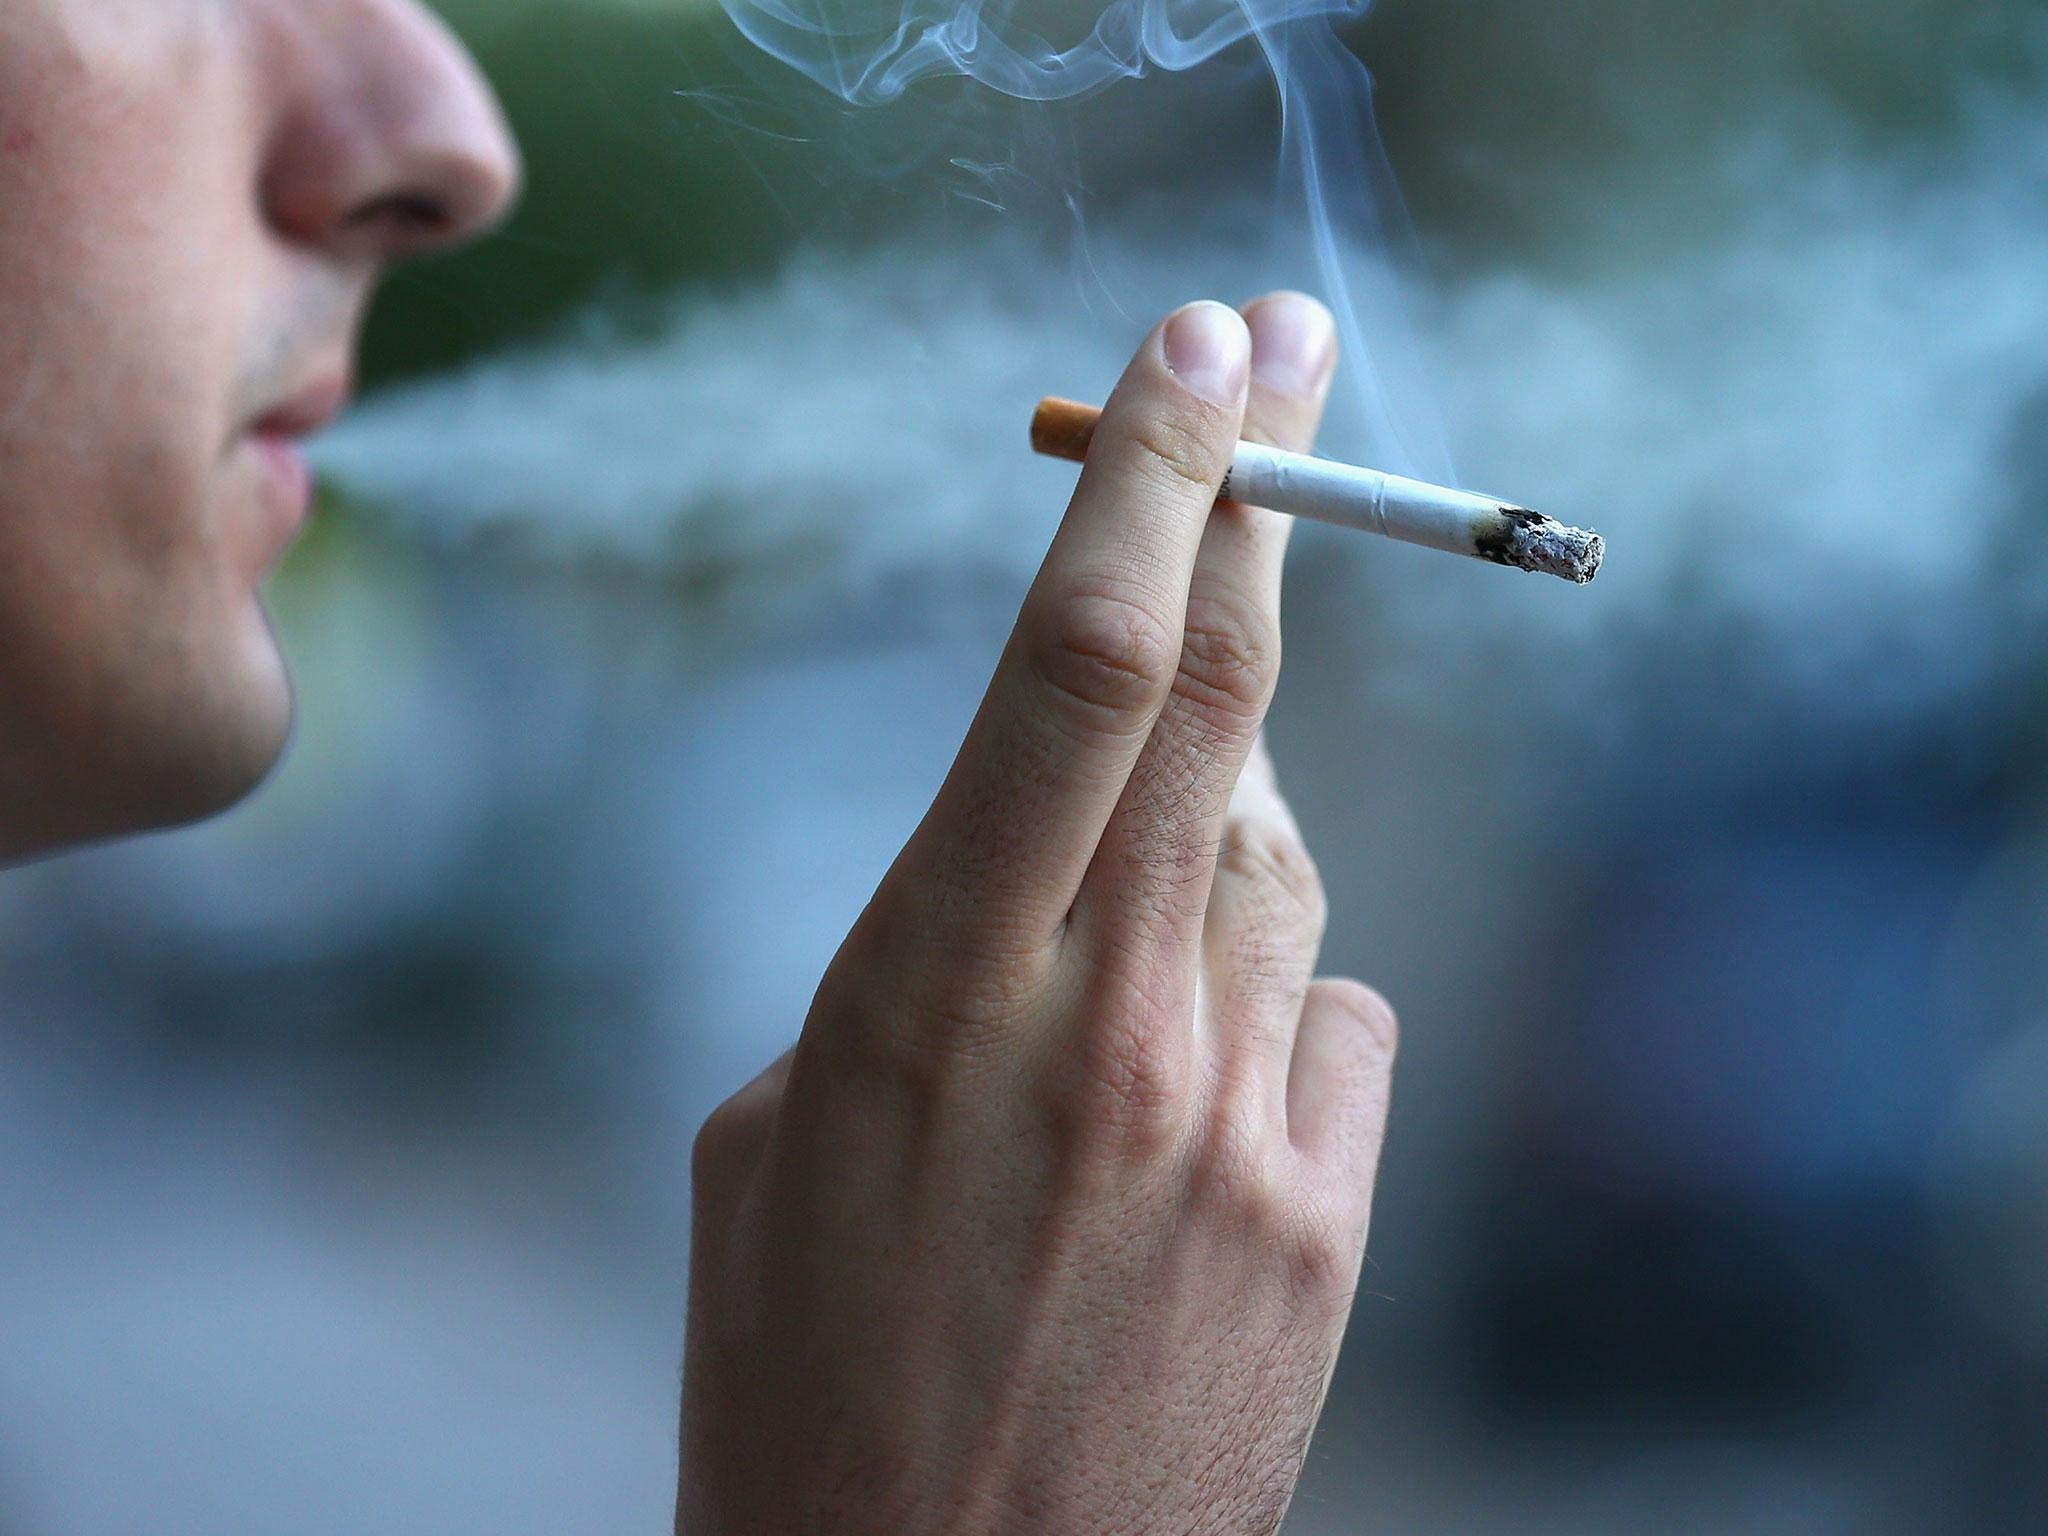 In Britain, children smoke their first cigarette at 3 years